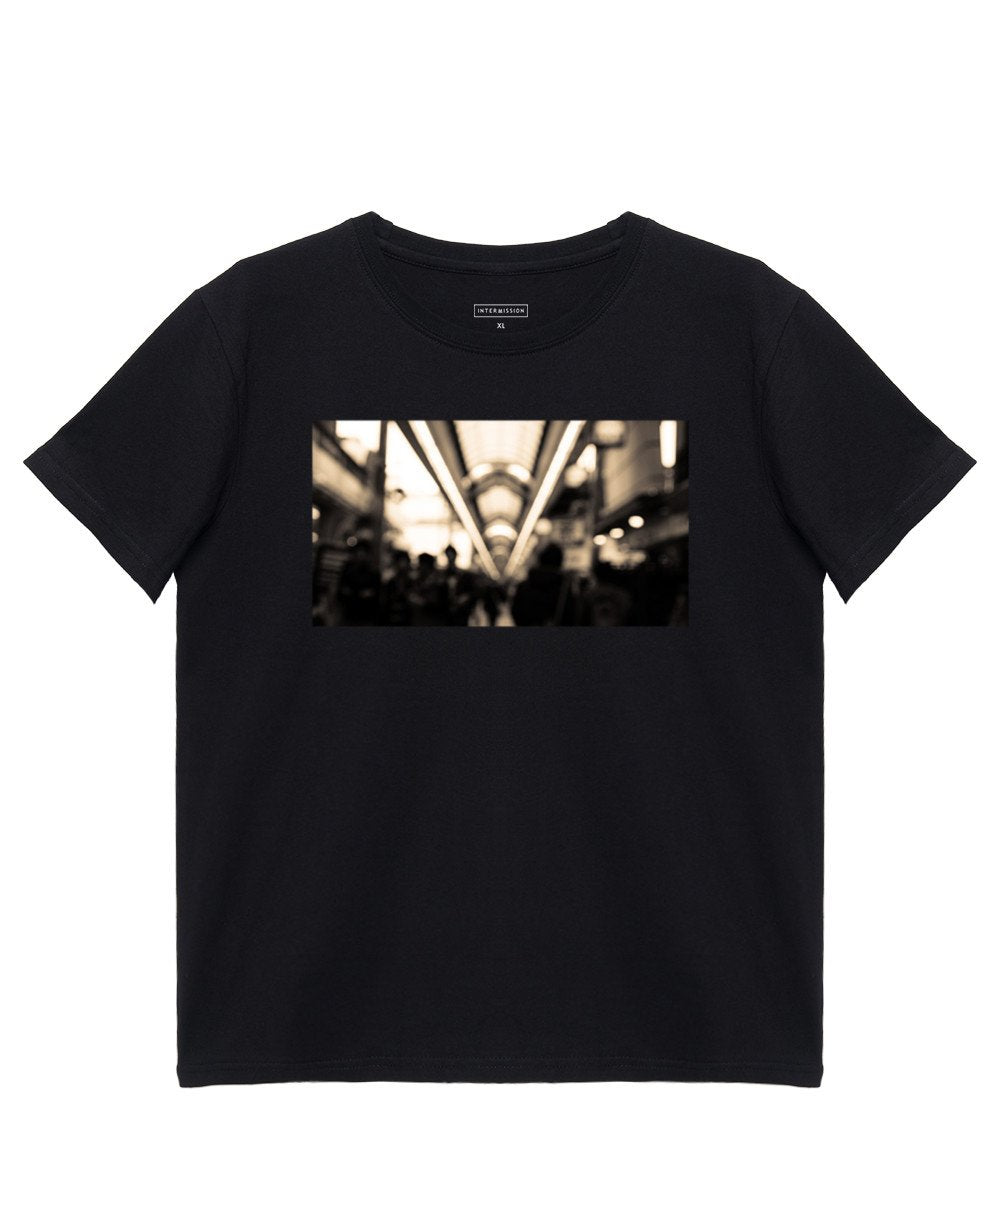 Printed T-Shirt in Black - T-Shirts - INTERMISSION - BRANMA